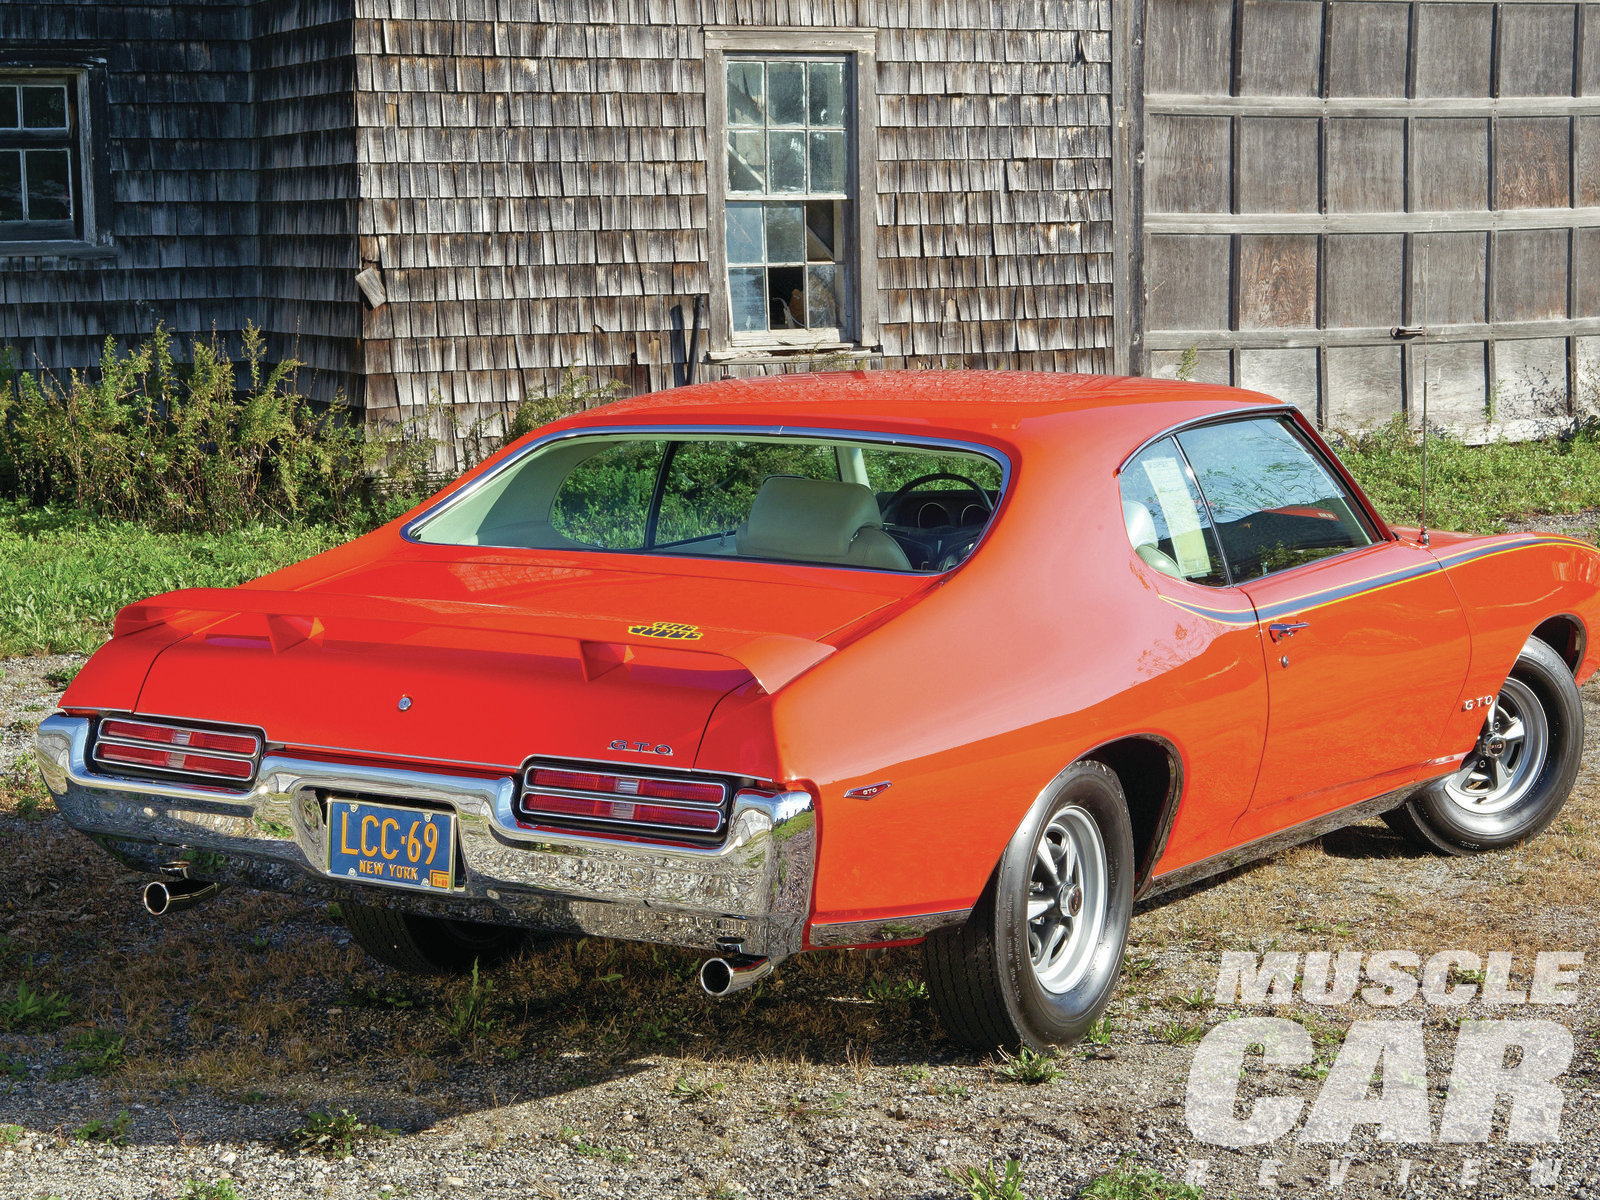 When Rich Dobbins bought the Judge in 2005, it was a 21,000-mile, all-original example of Pontiac's image car for 1969.